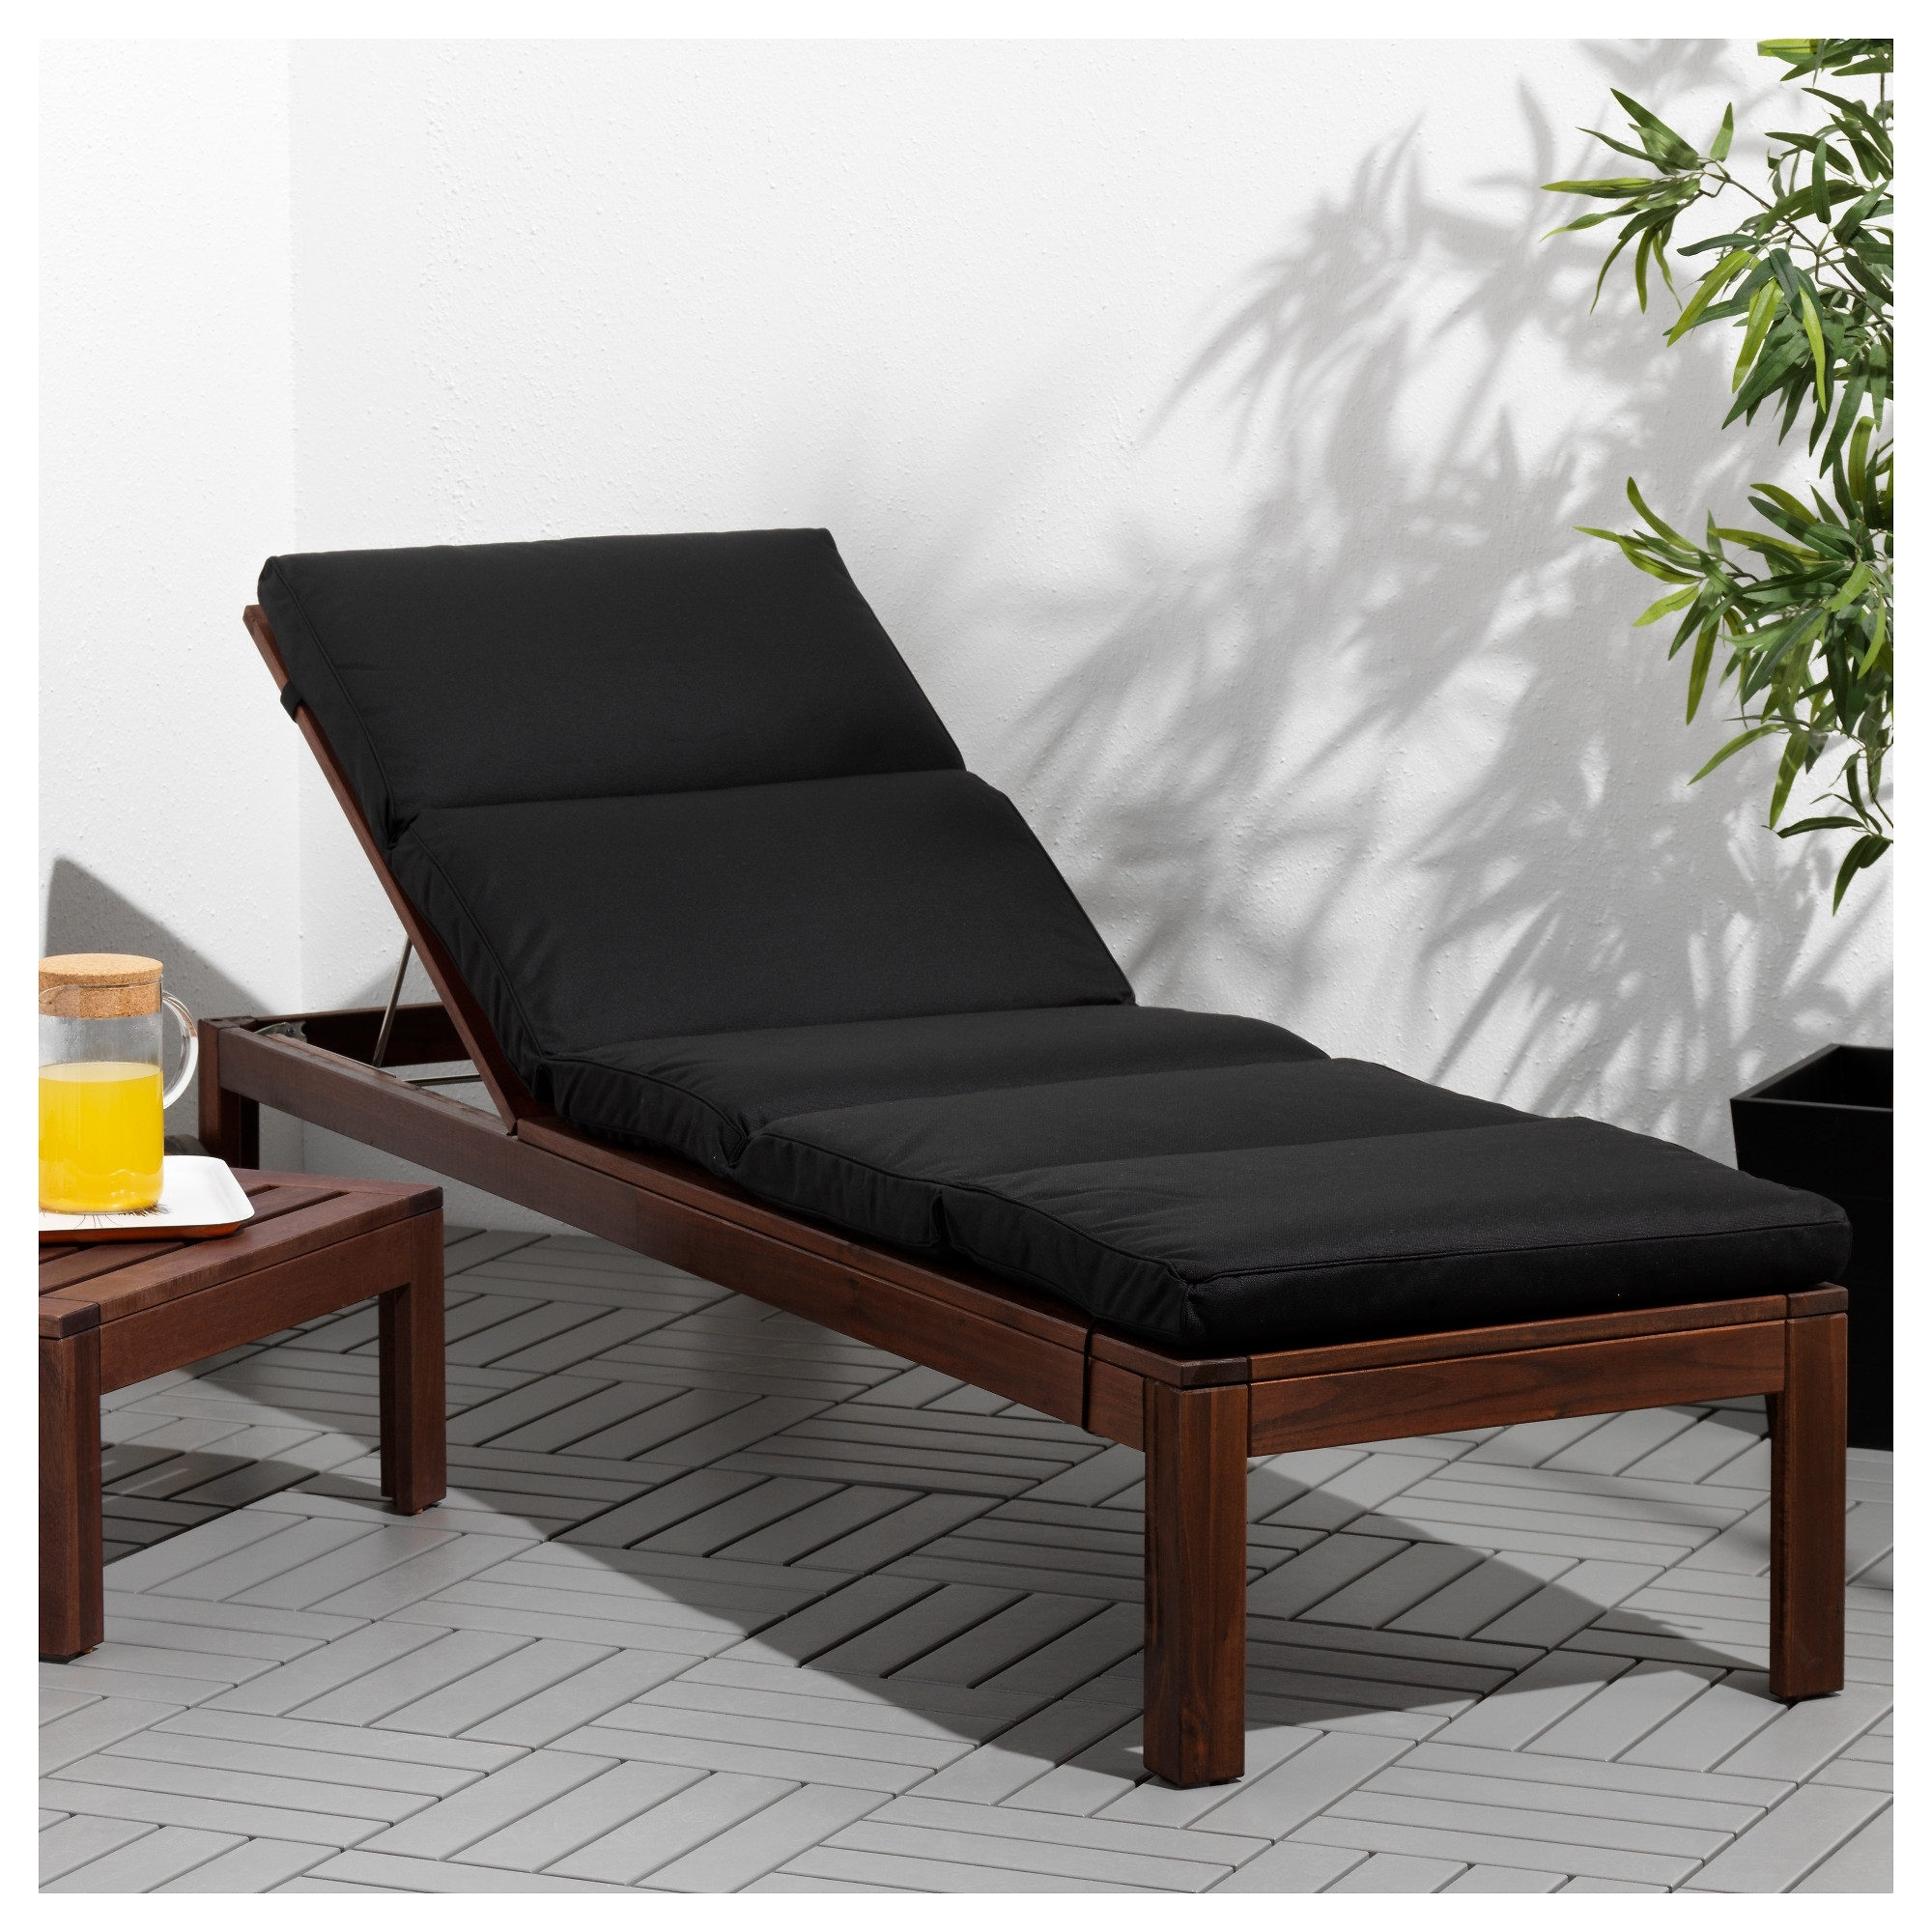 Well Known Outdoor Ikea Chaise Lounge Chairs For Outdoor : Patio Furniture Lounge Lounge Chairs For Bedroom Plastic (View 15 of 15)